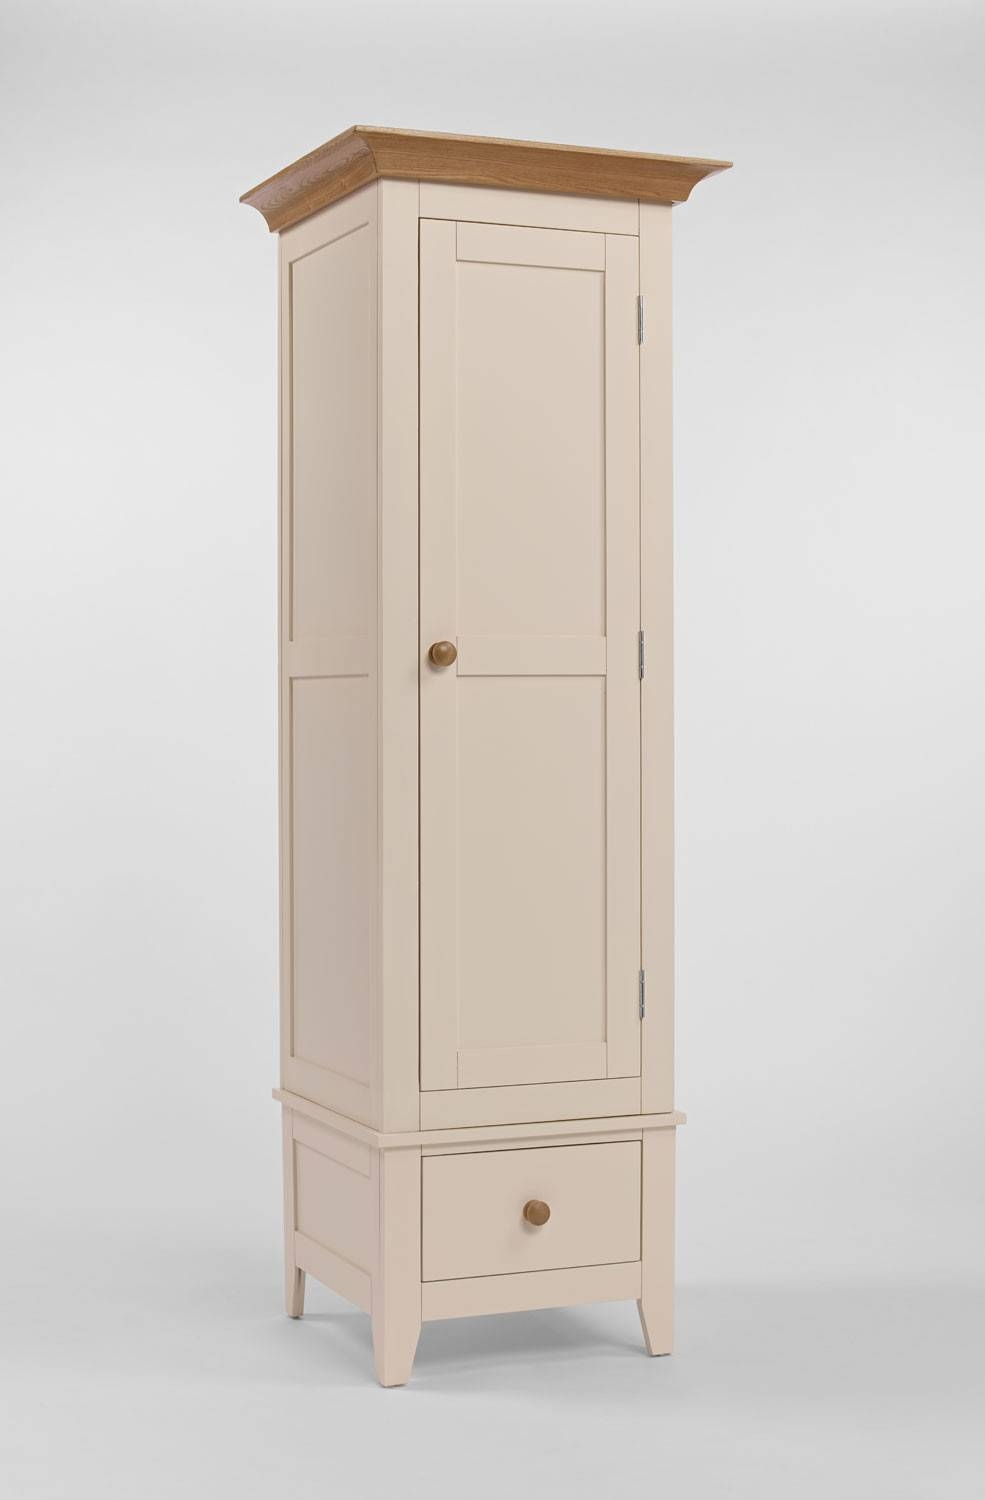 Bedroom Furniture with regard to Single Oak Wardrobes With Drawers (Image 3 of 15)